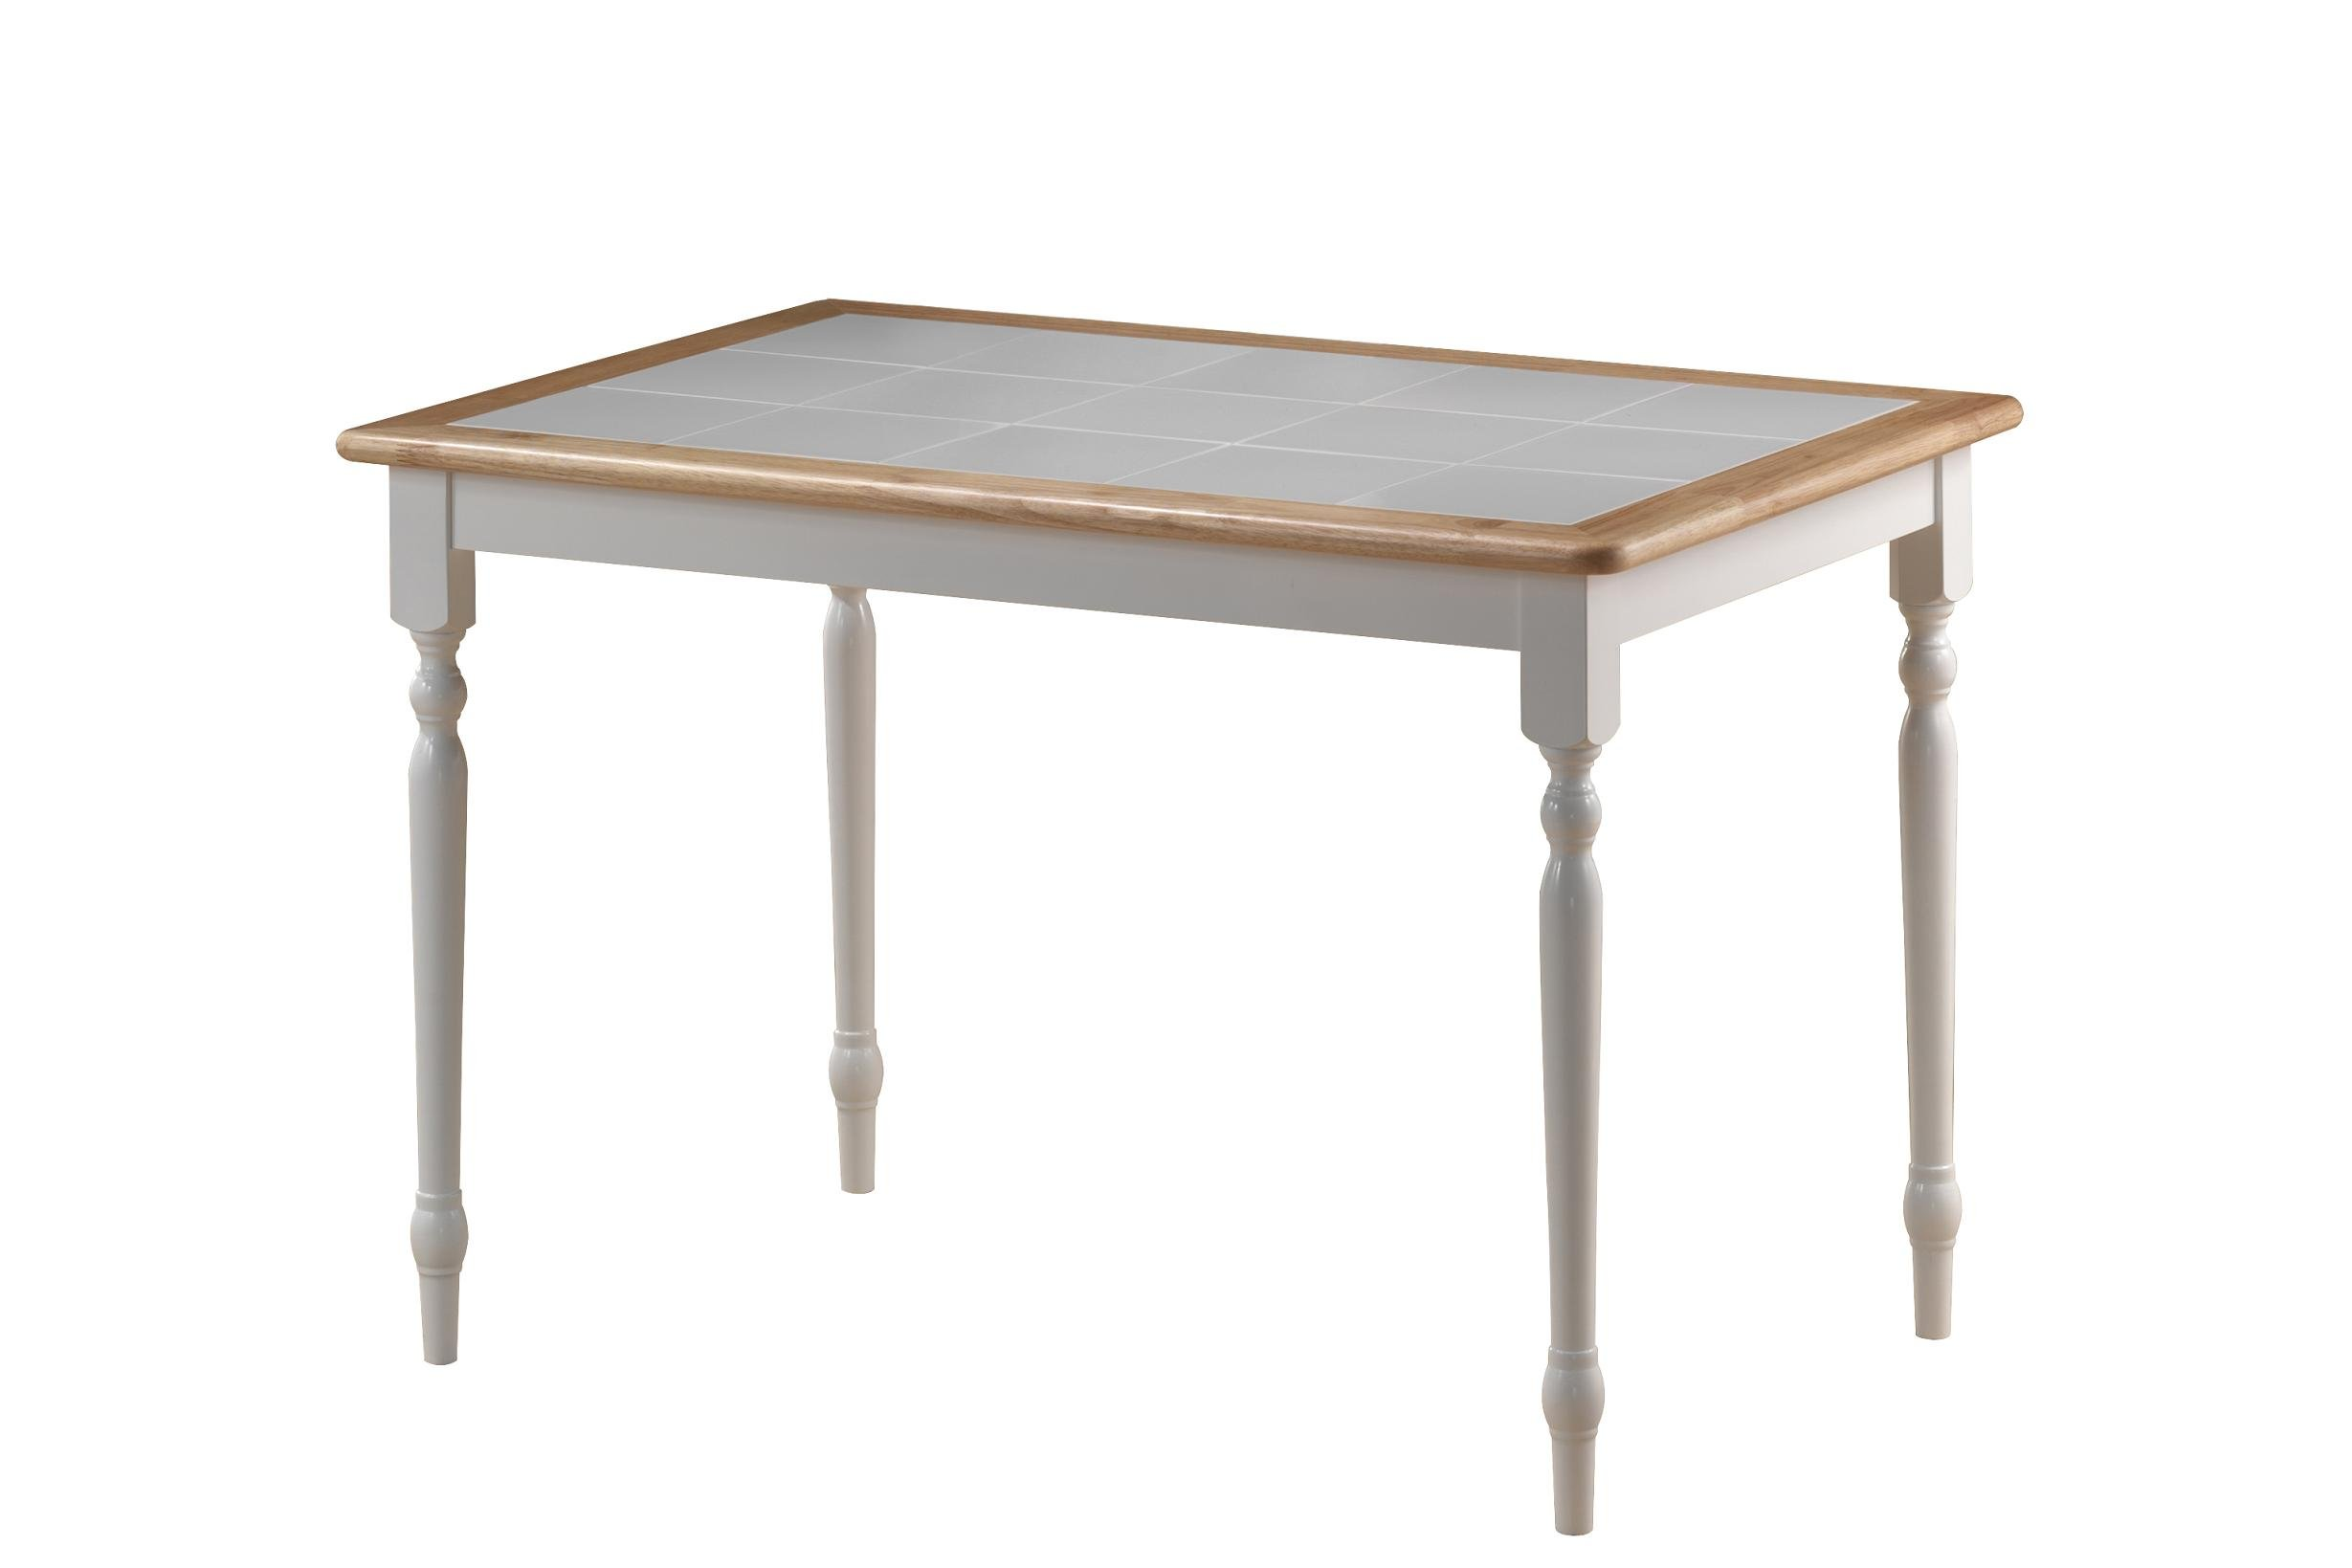 Boraam 70100 Tile Top Table, 30-Inch by 45-Inch, White/Natural by Boraam